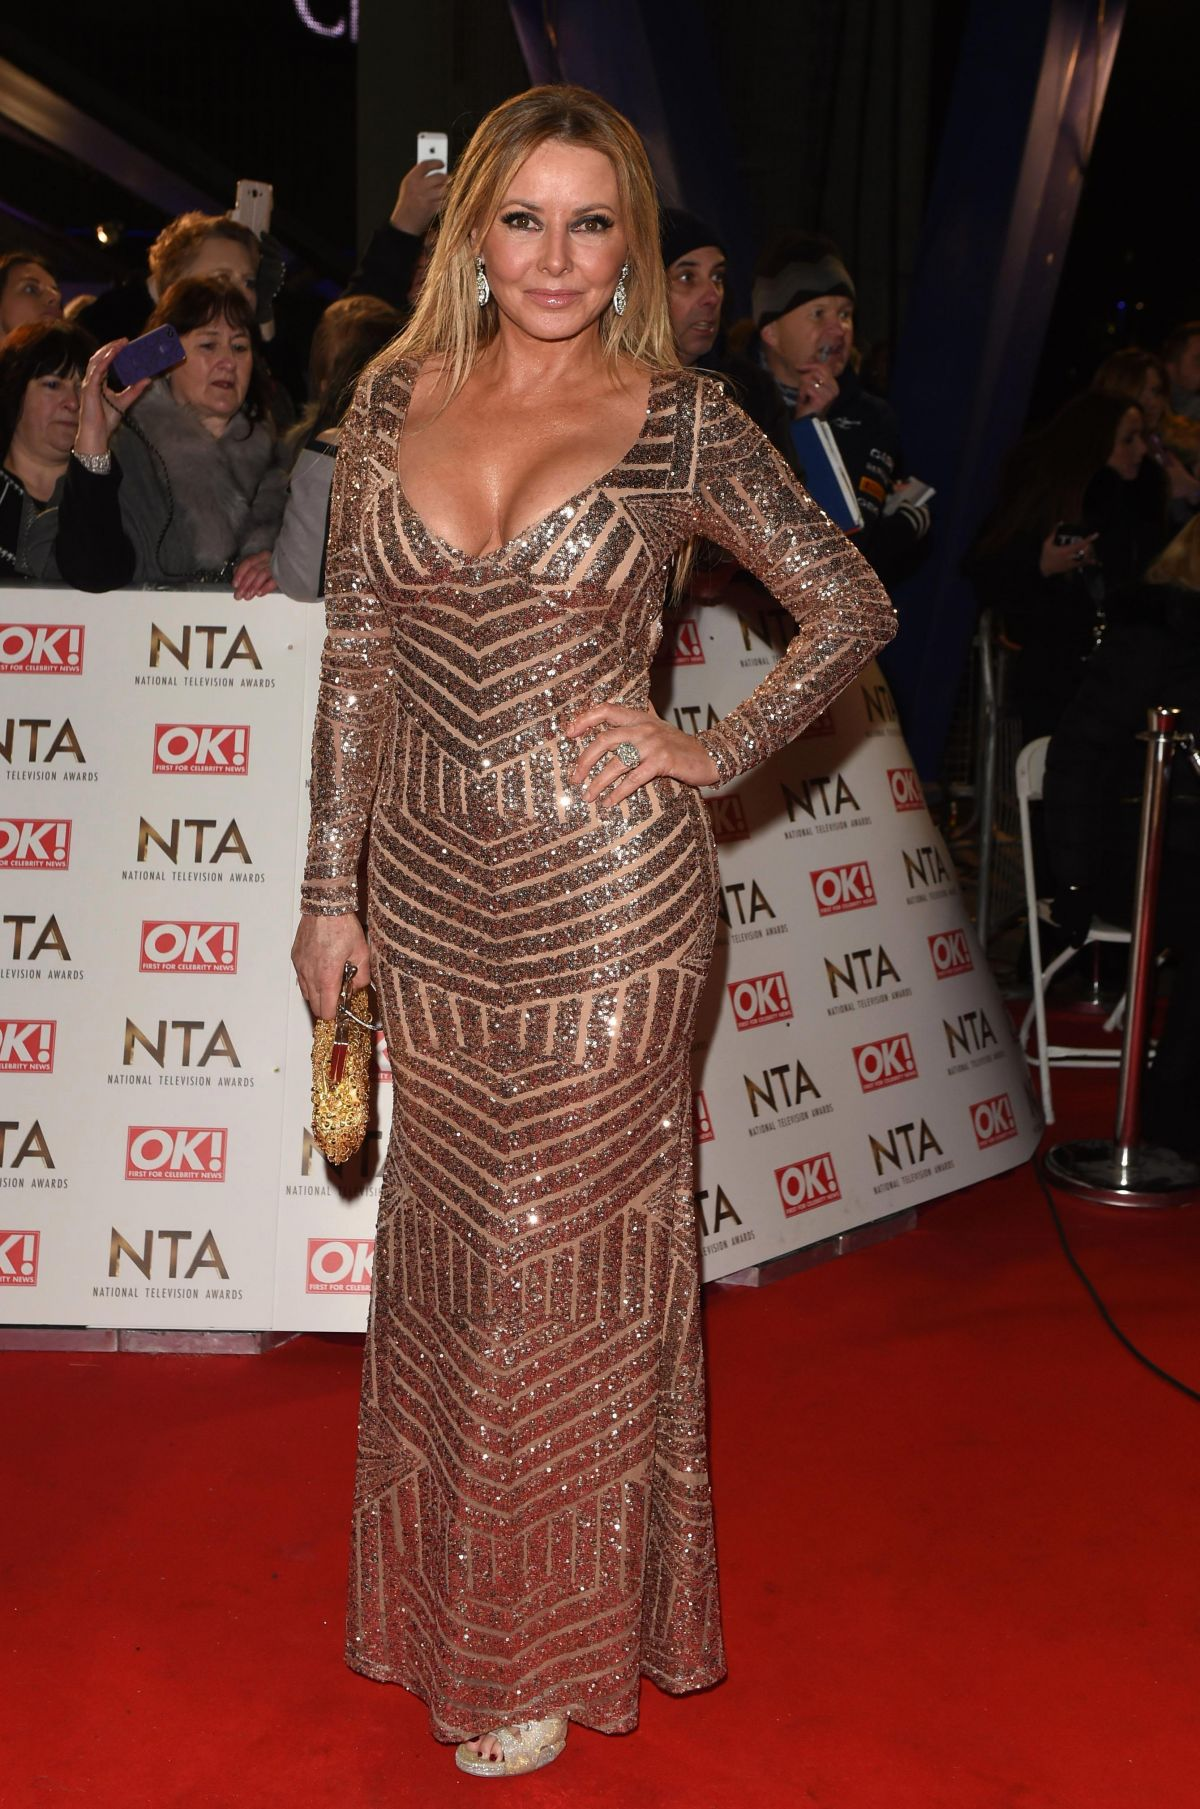 CAROL VORDERMAN at National Television Awards in London 01/25/2017